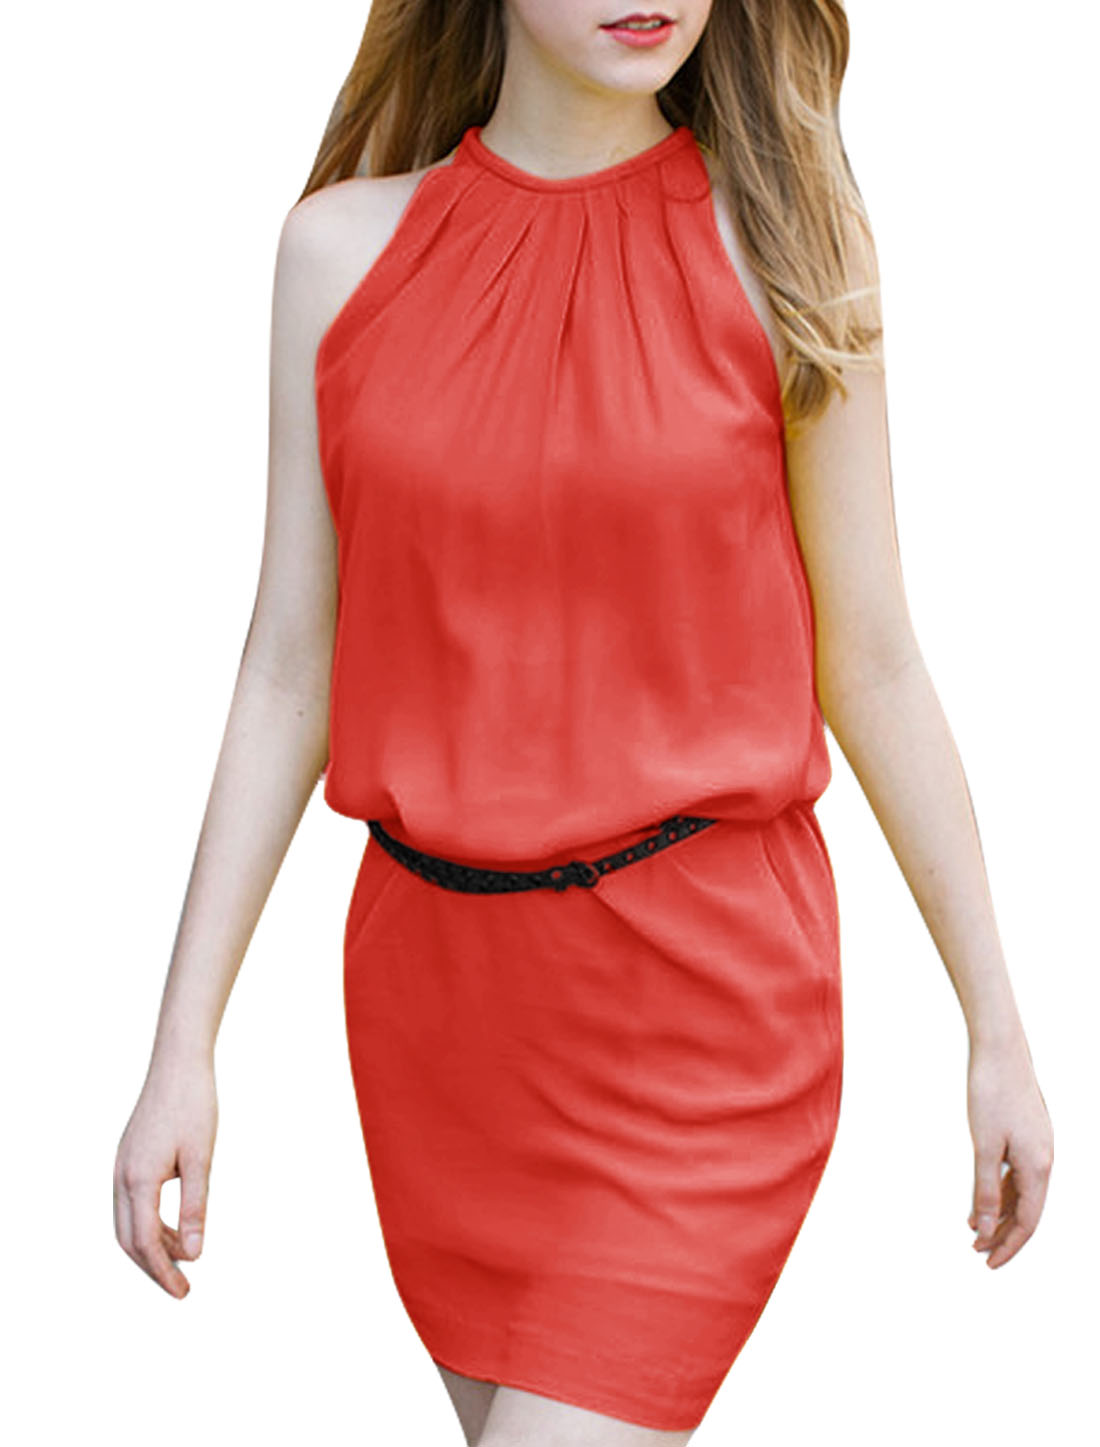 Women Zip Closure Lining Stylish Dress Watermelon Red L